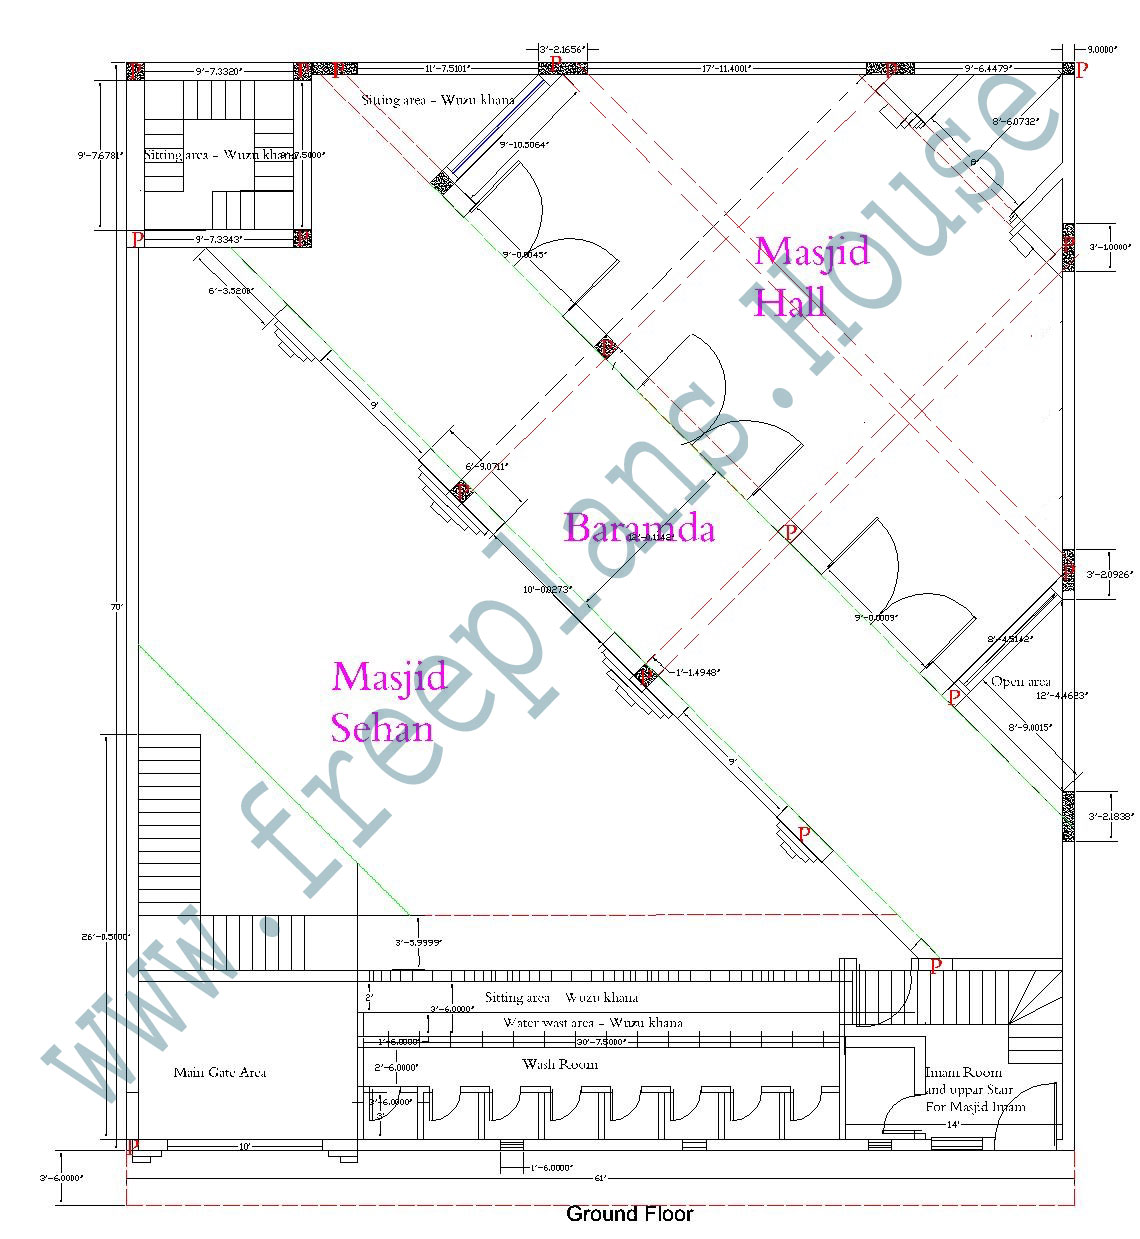 70 61 feet 4270 square feet 396 square meters masjid plan